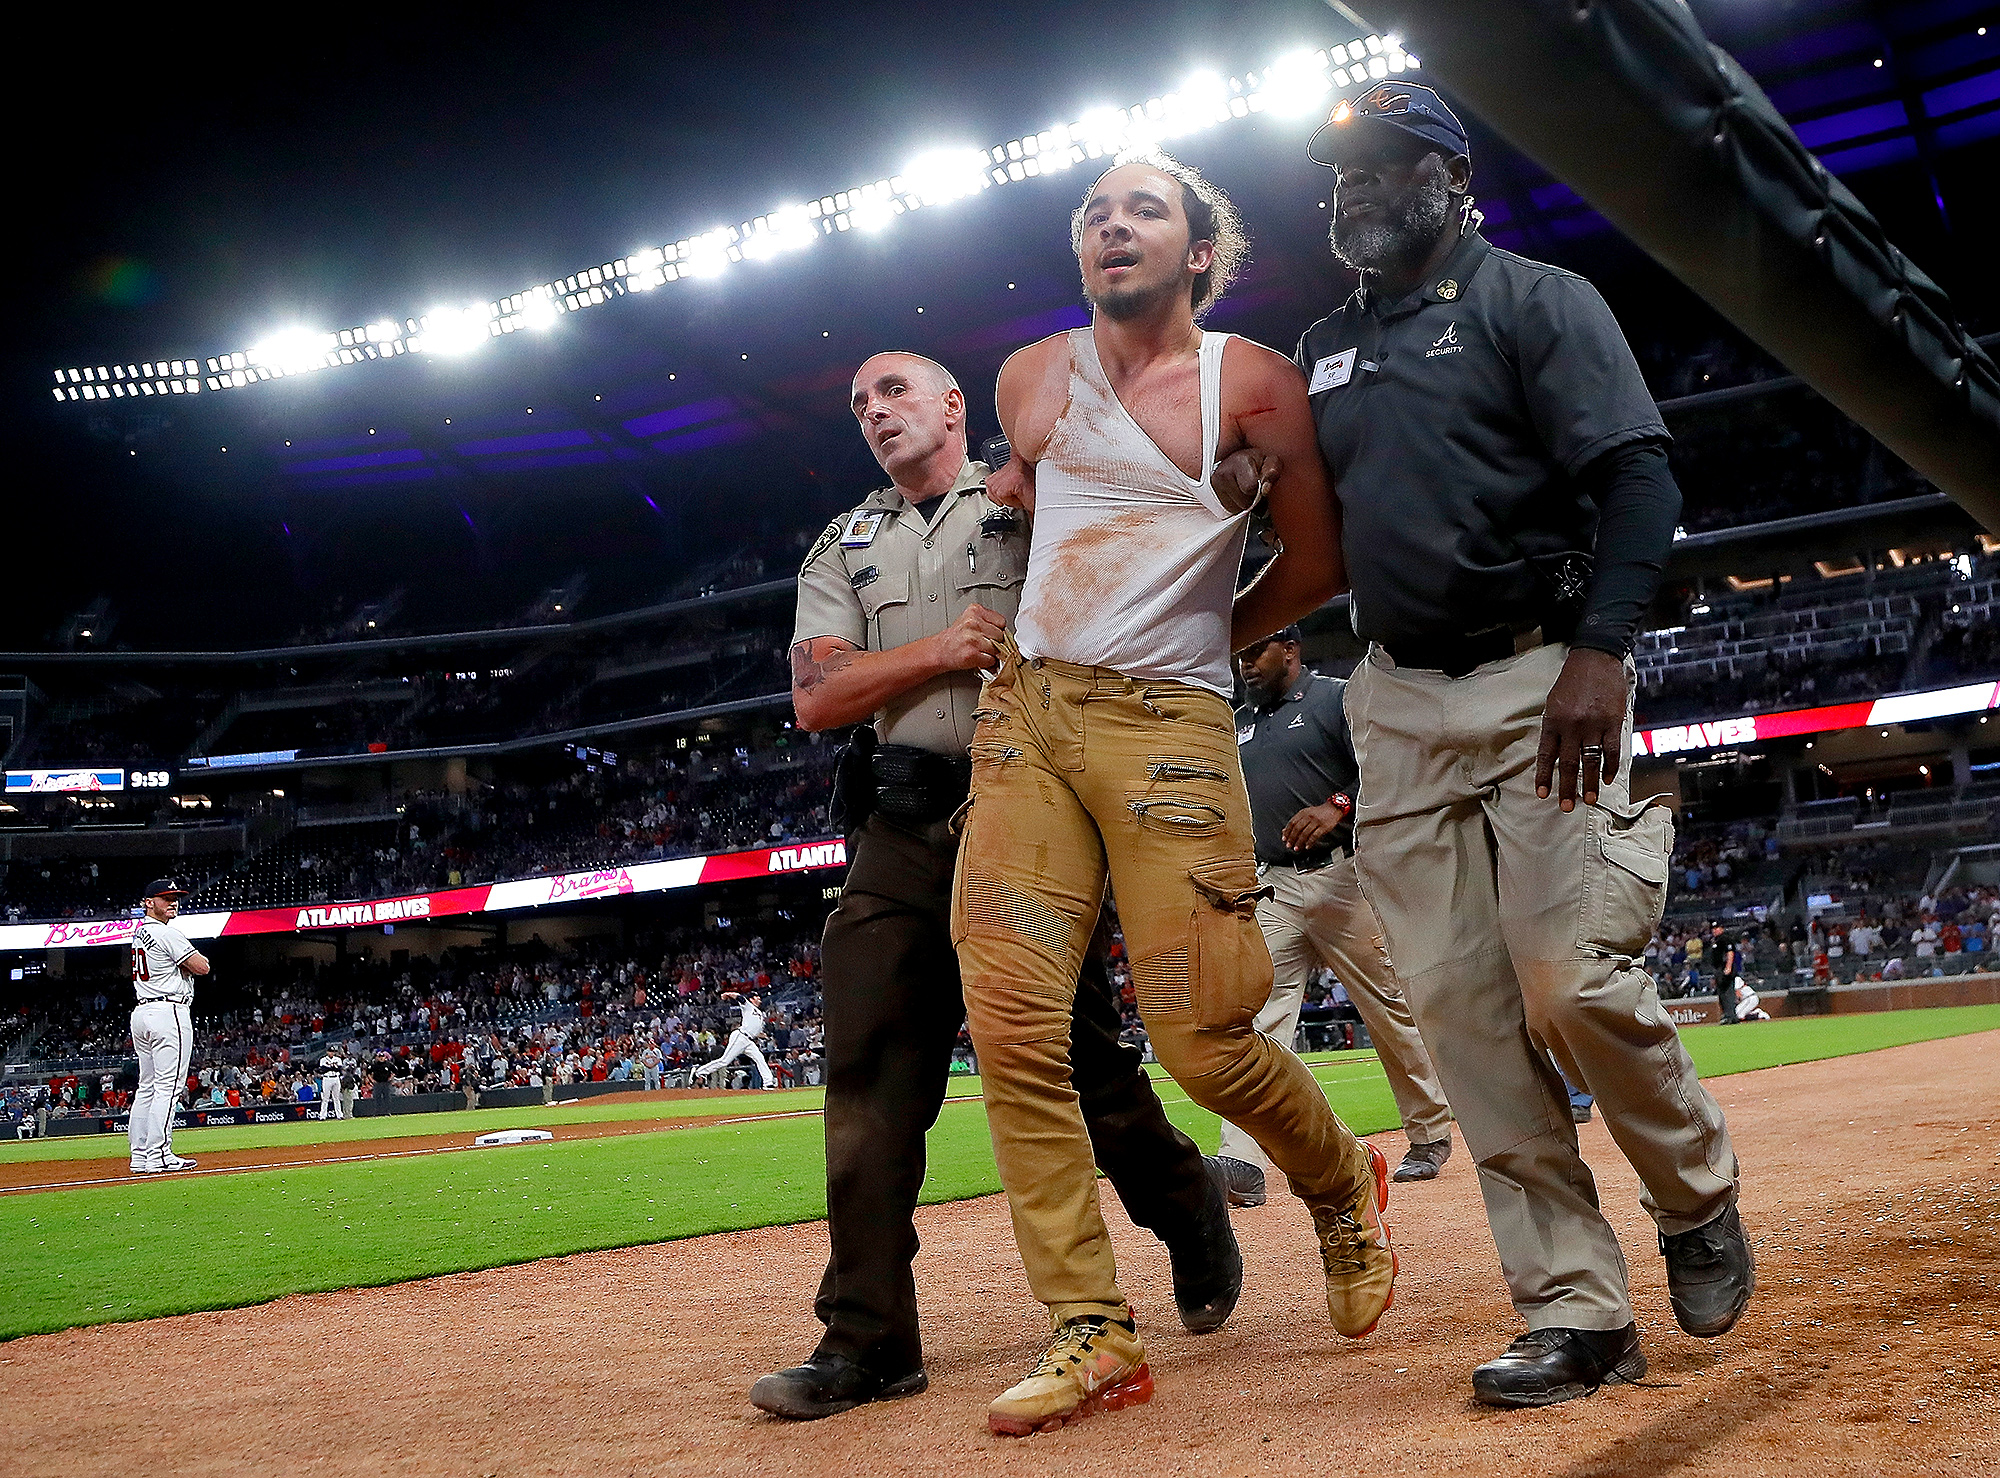 spectator is escorted out by security after he ran on the field in Atlanta, Georgia